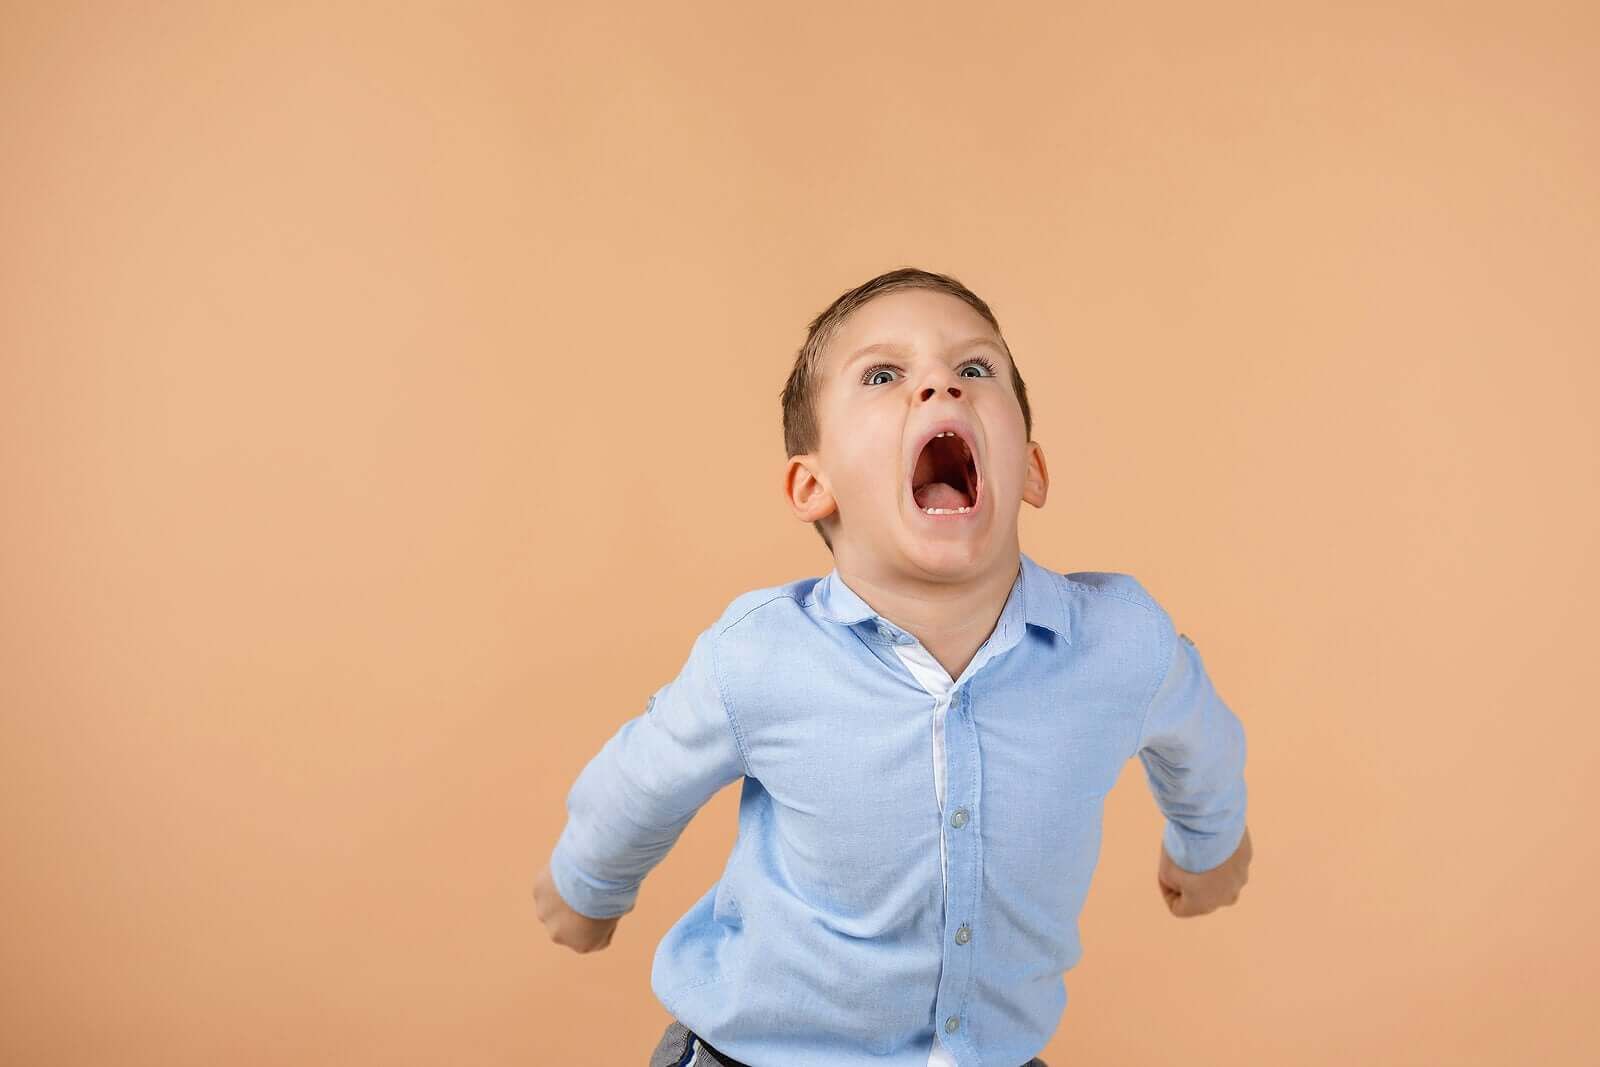 4 Tips to Stop Your Child from Screaming in Public